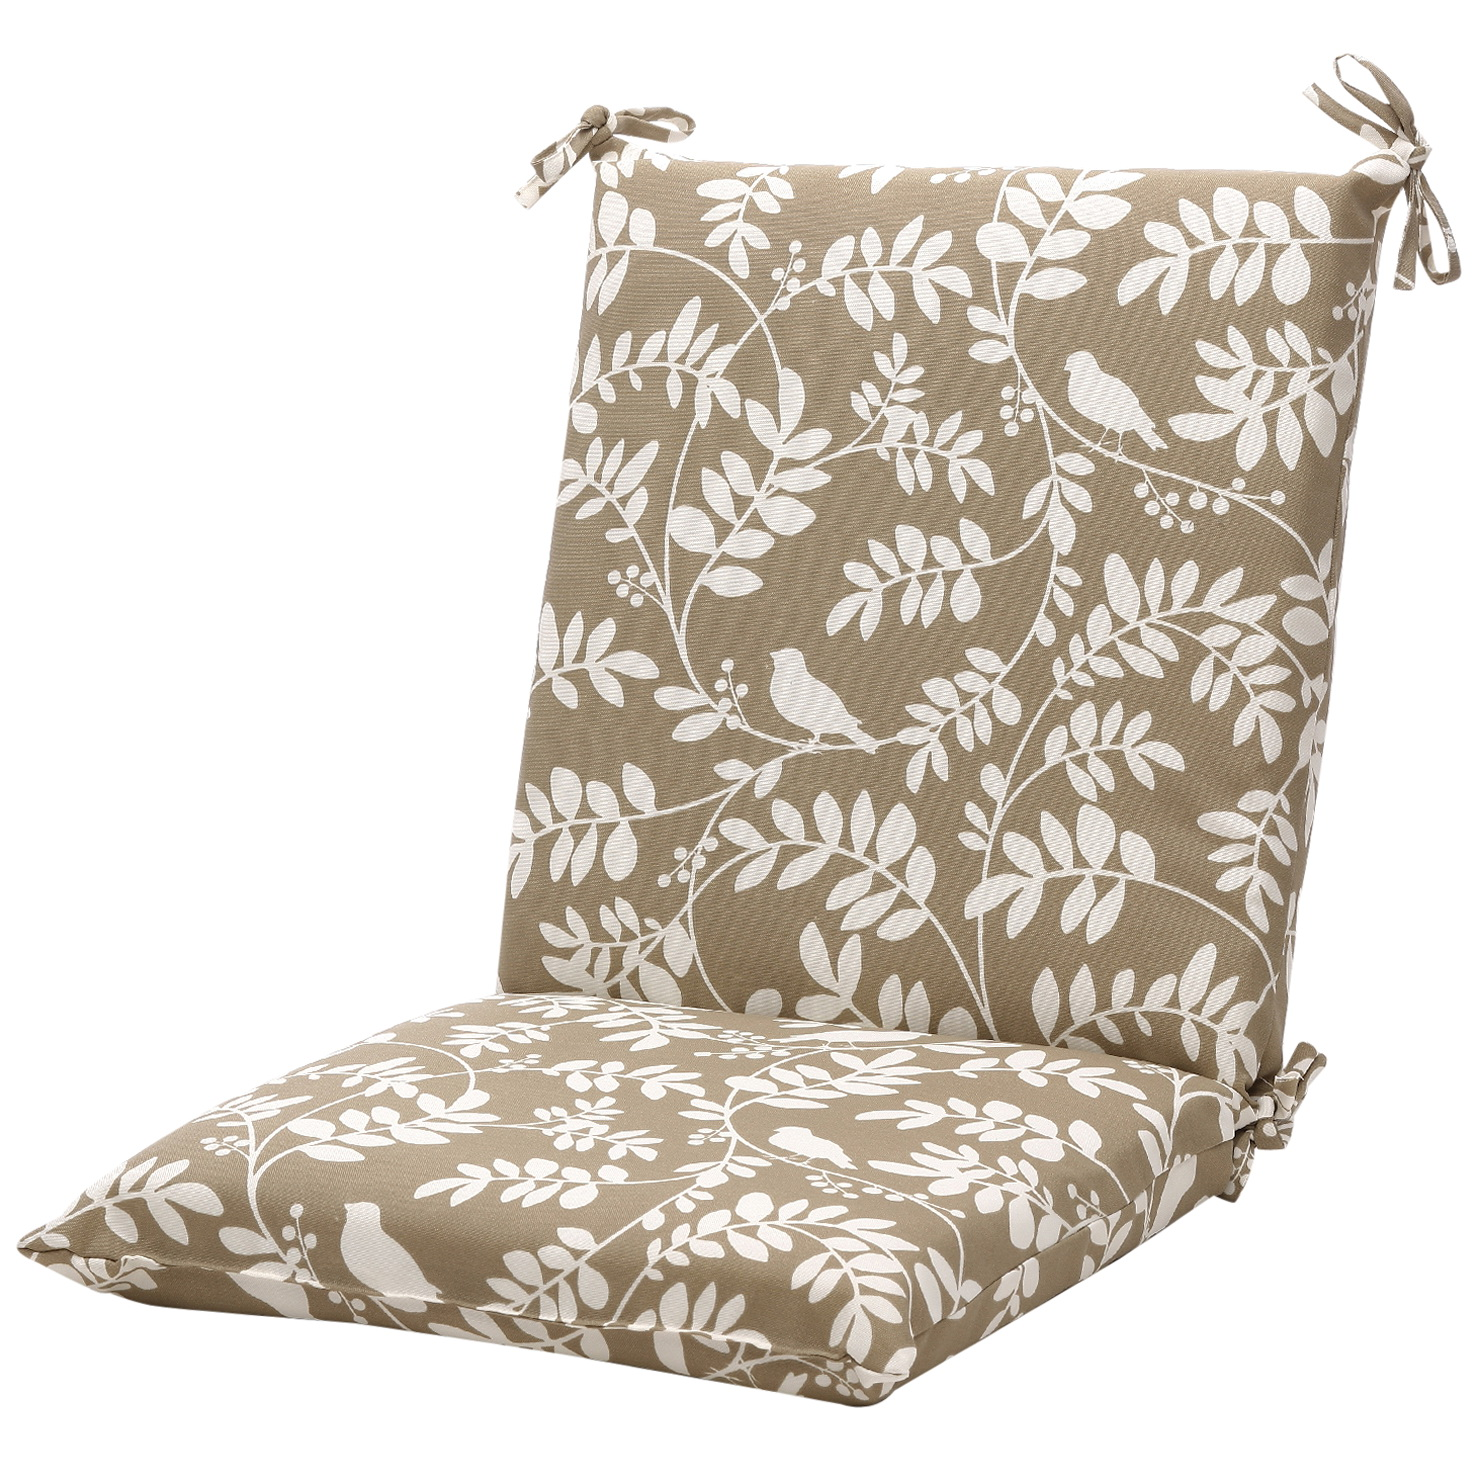 Patio furniture cushions clearance overstock home design for Outdoor furniture overstock